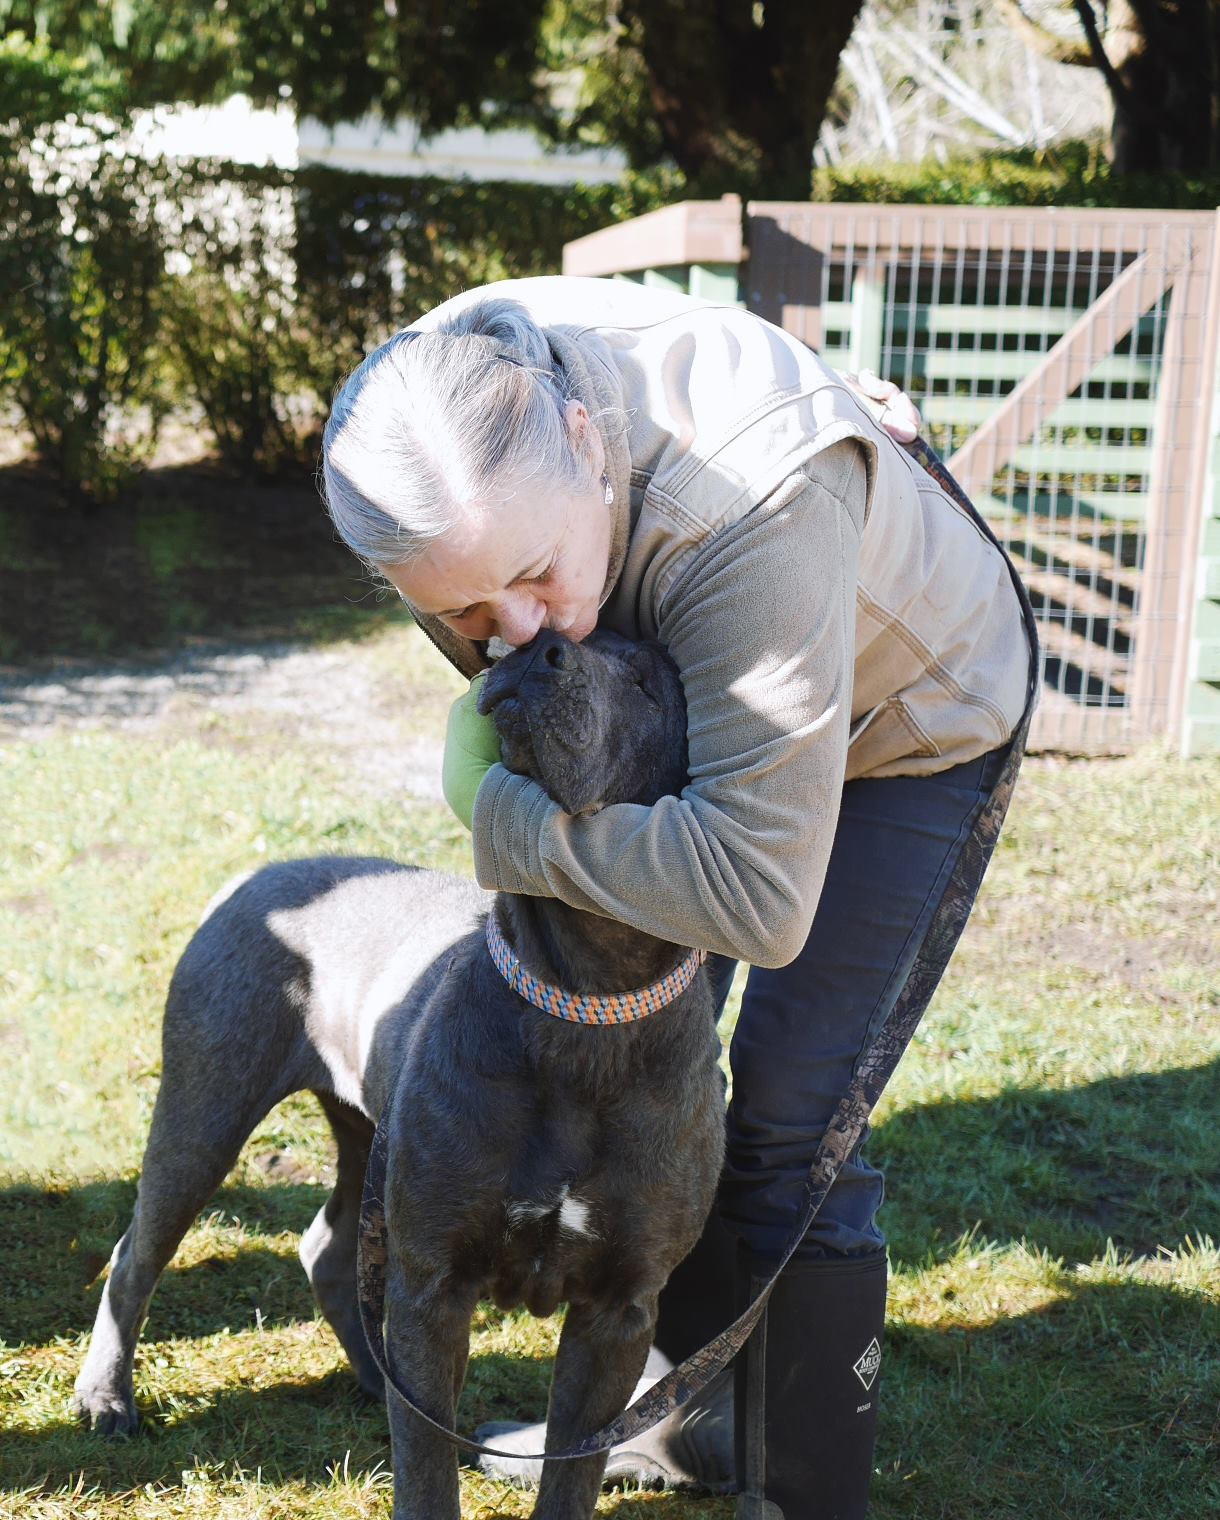 Del Norte Animal Control Shelter volunteer Sandy loves on Gracie, an abused and neglected dog in their care.